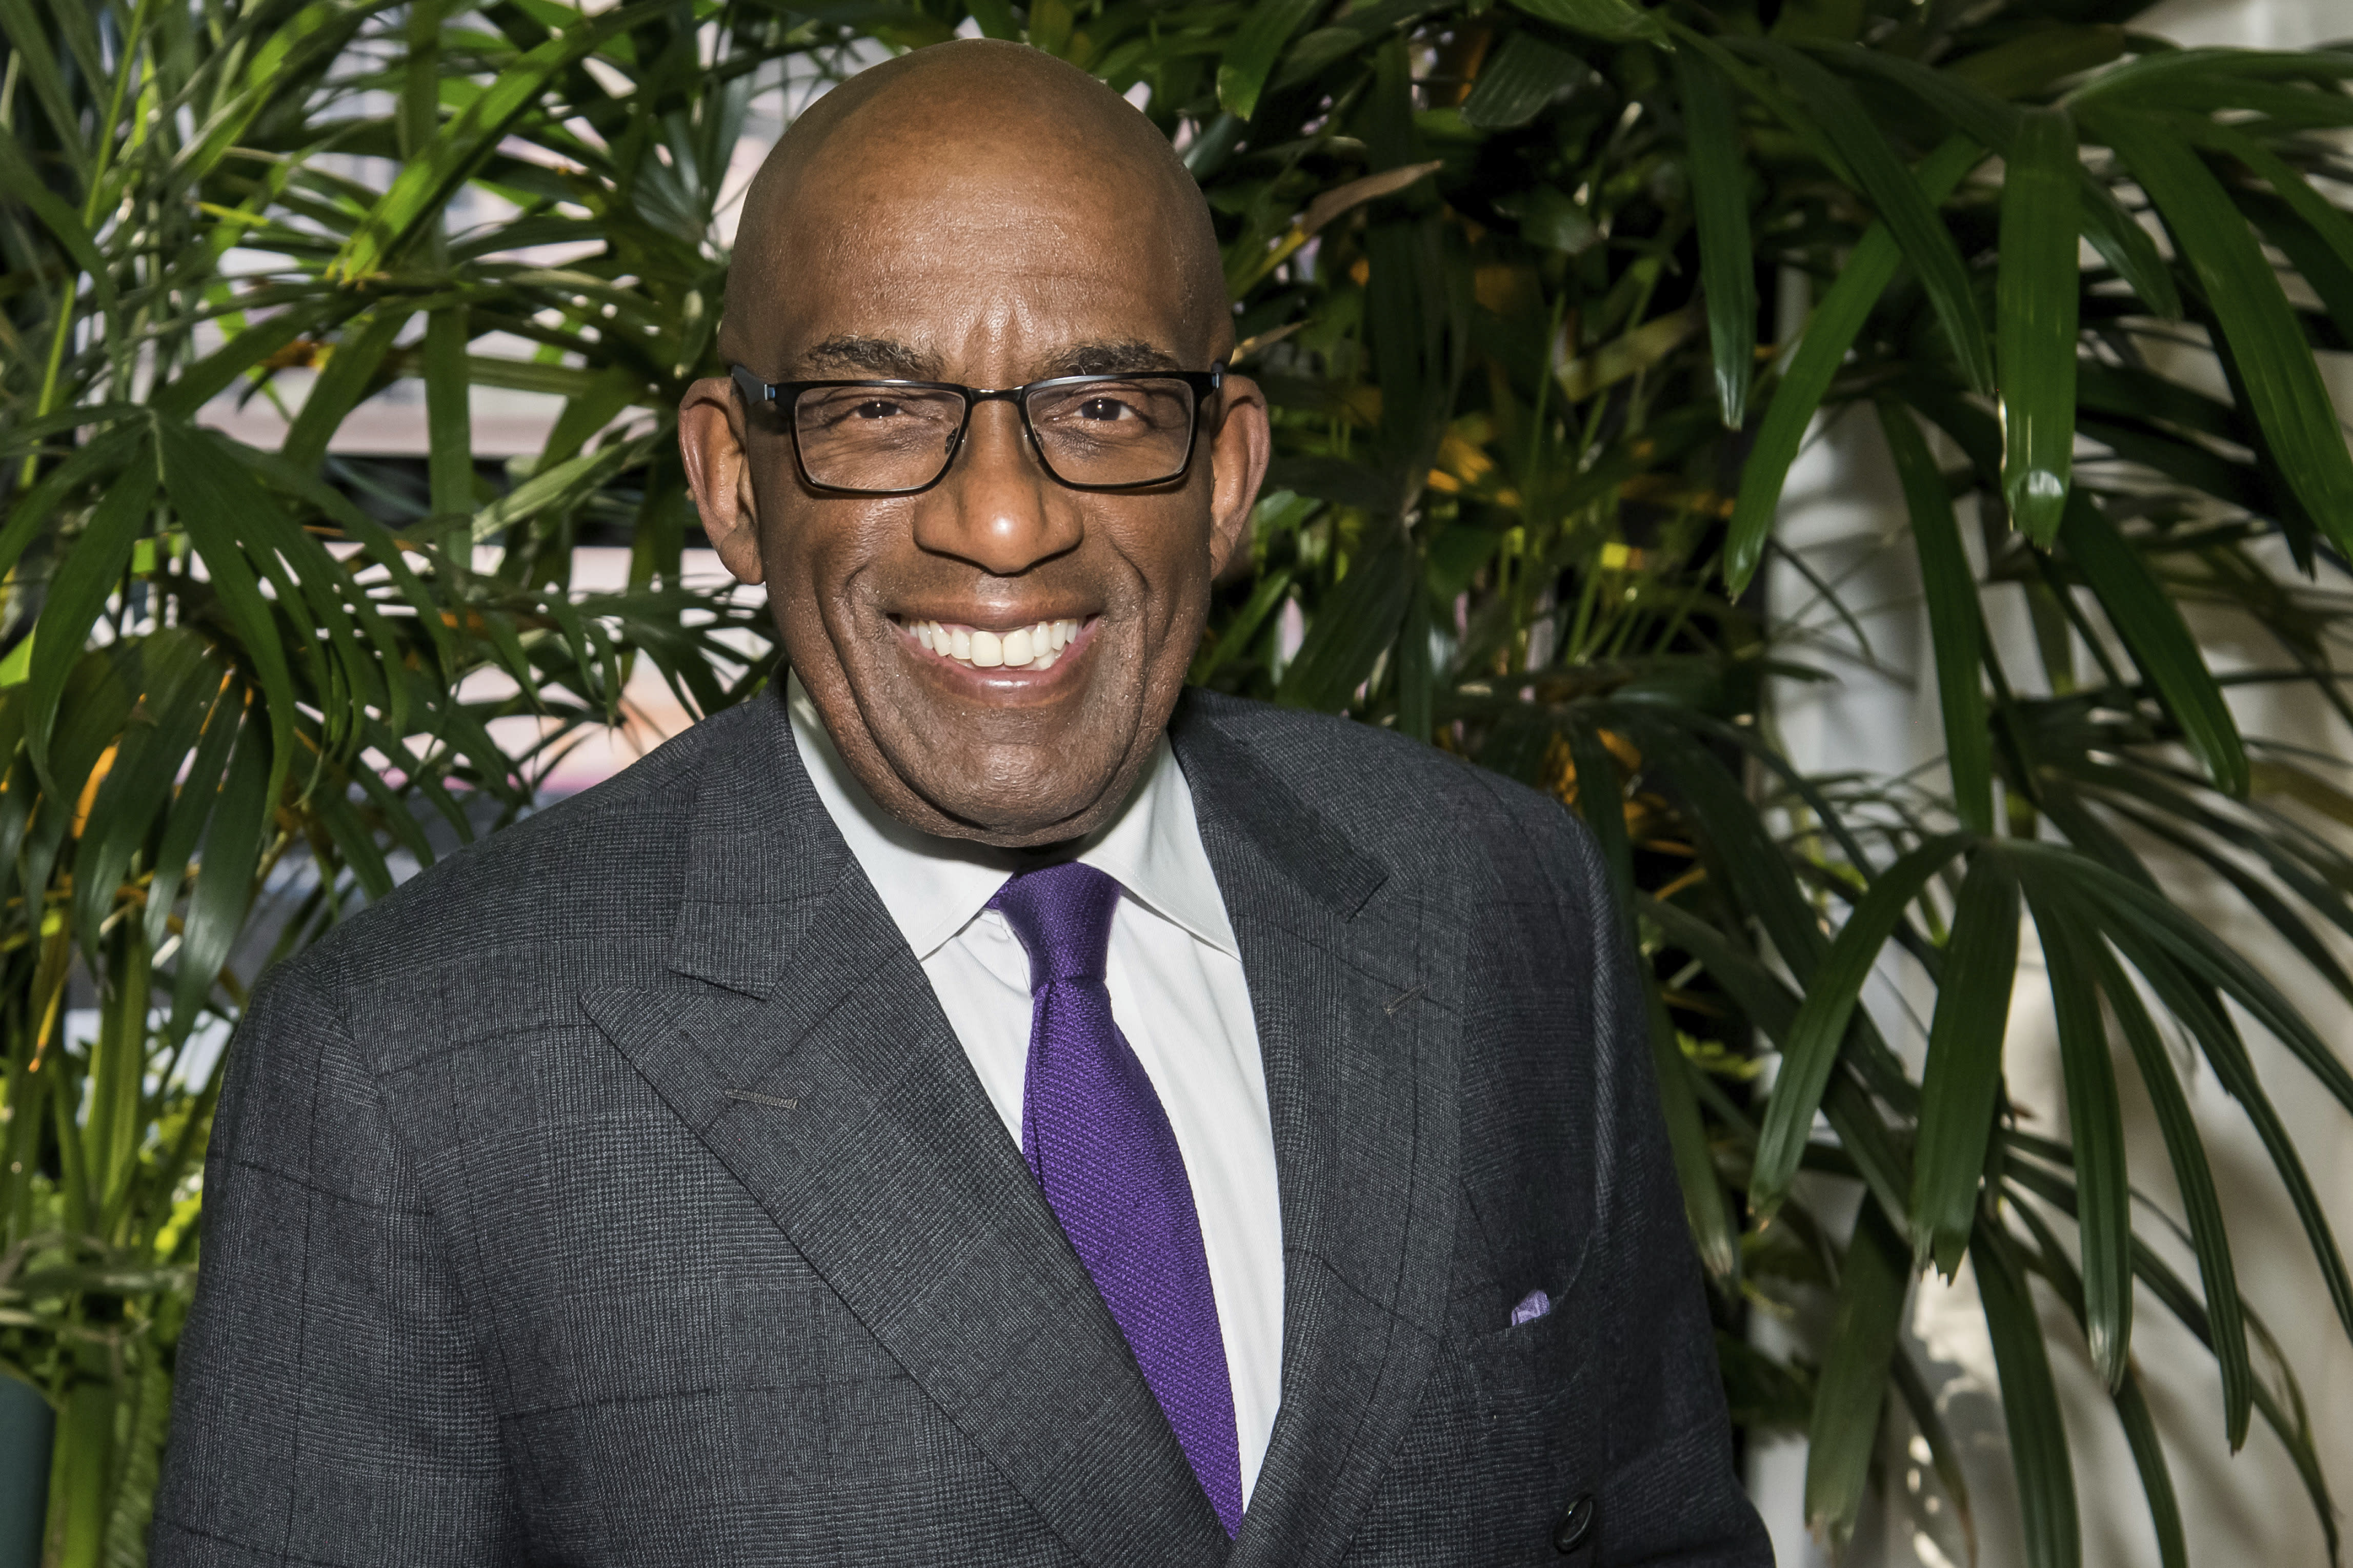 Al Roker responds to Bill Maher's fat-shaming comments: 'He doesn't know what he's talking about'